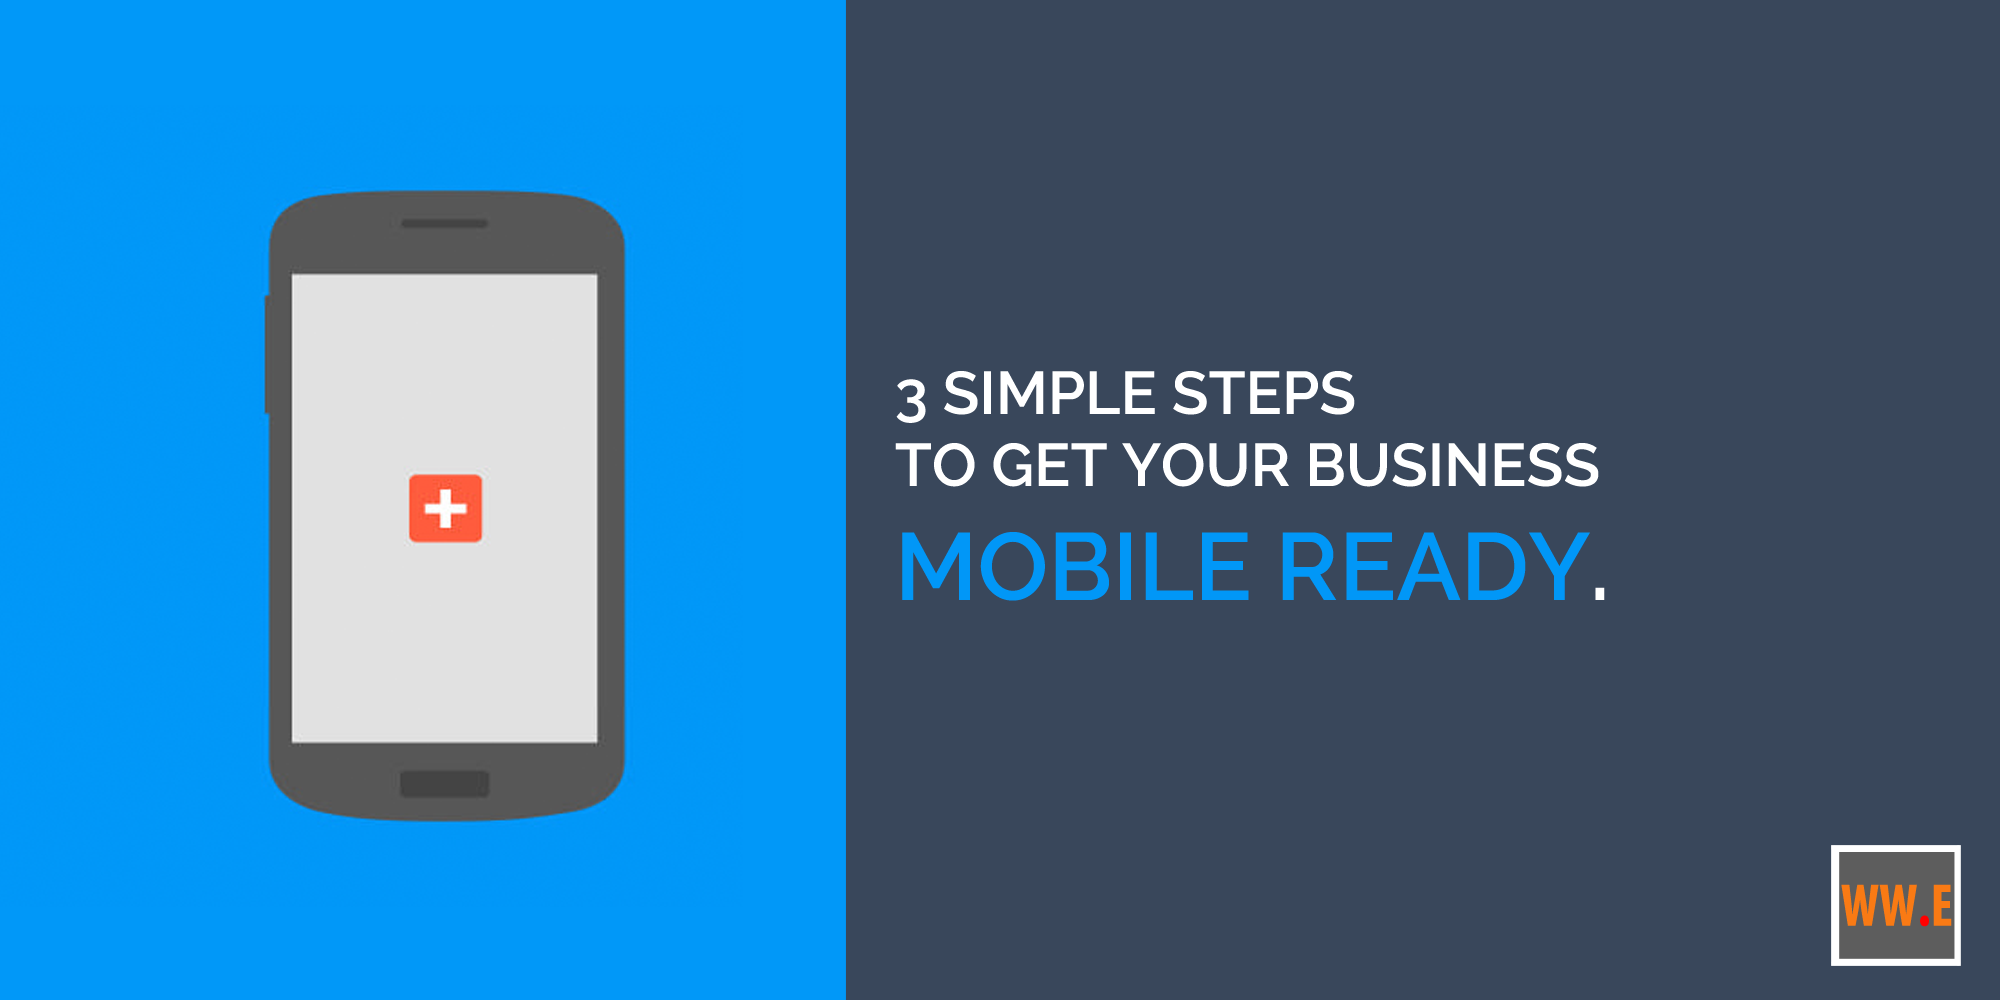 Make Your Business Mobile-Ready